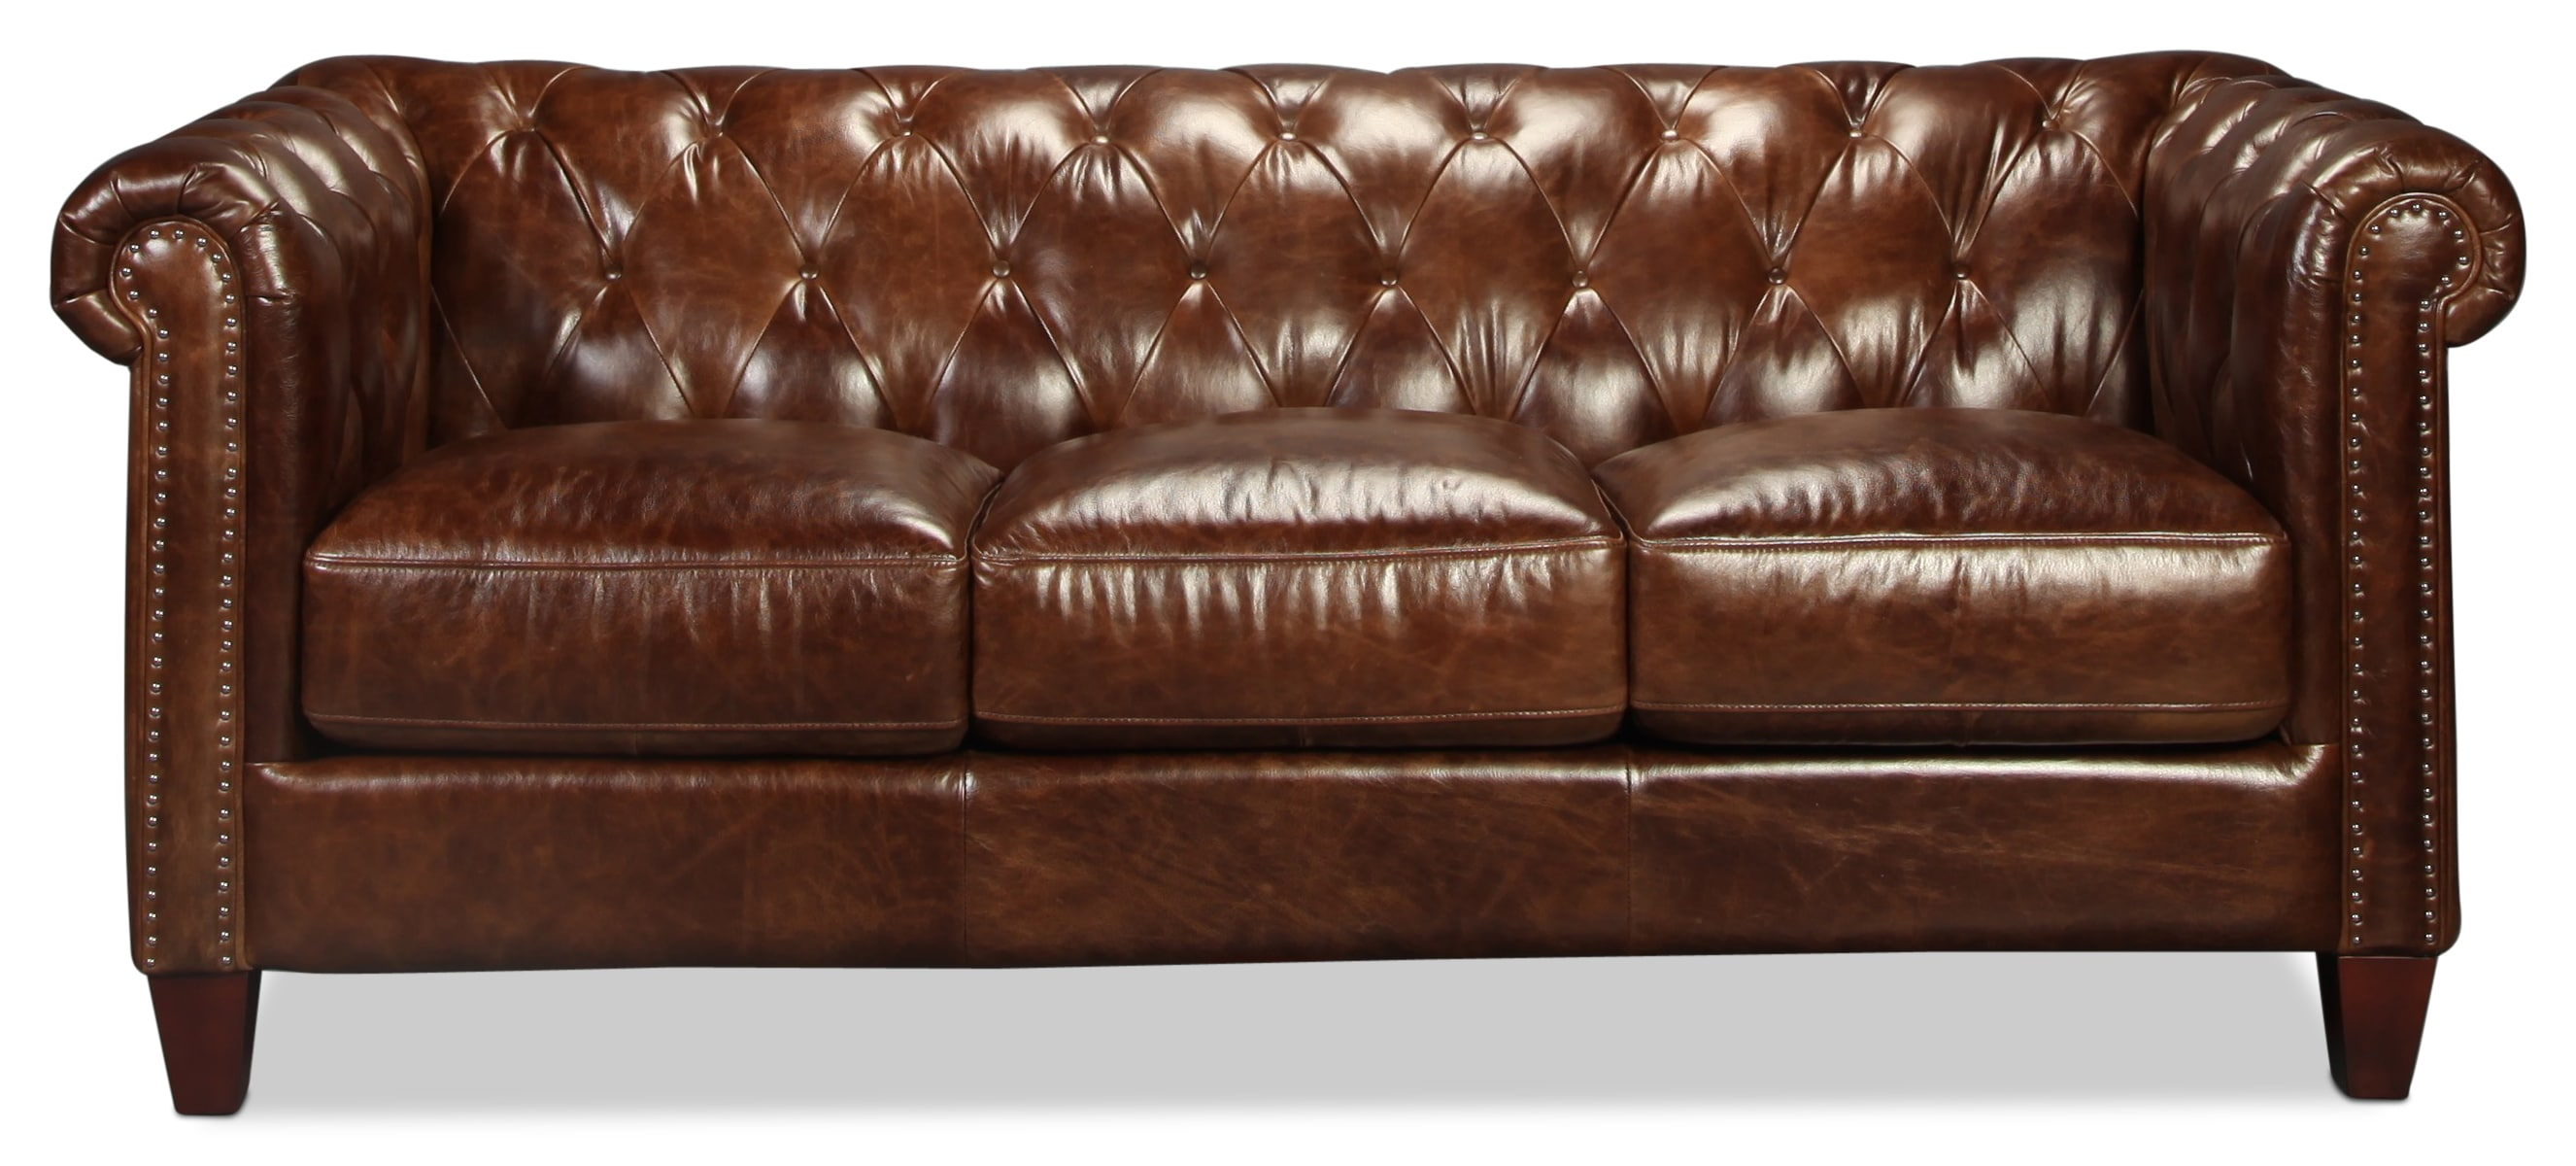 Natalia Leather Sofa - Cigar